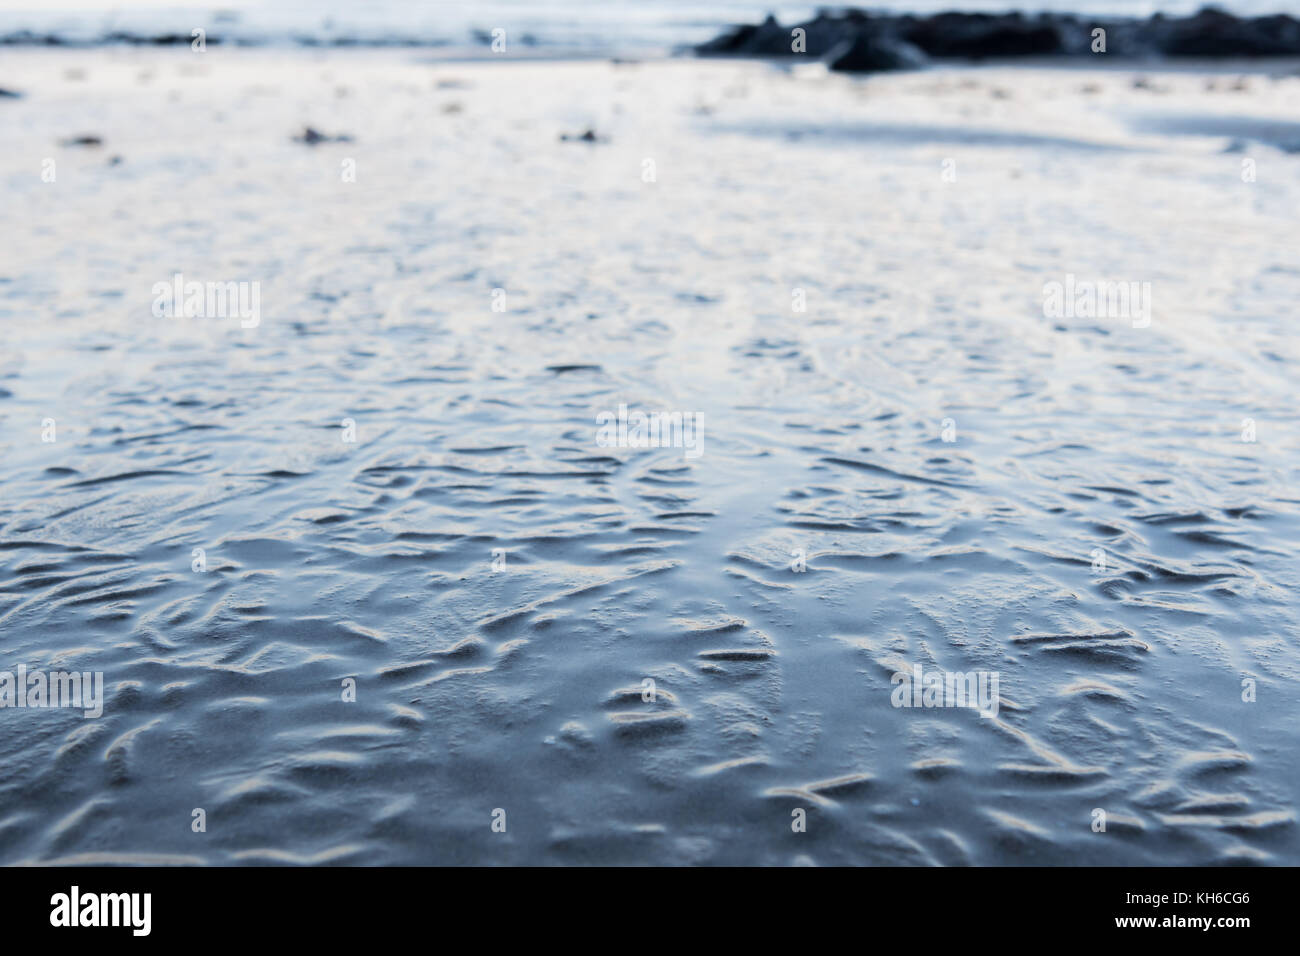 Close up of Wrinkles in Sandy Surface from receding tide - Stock Image